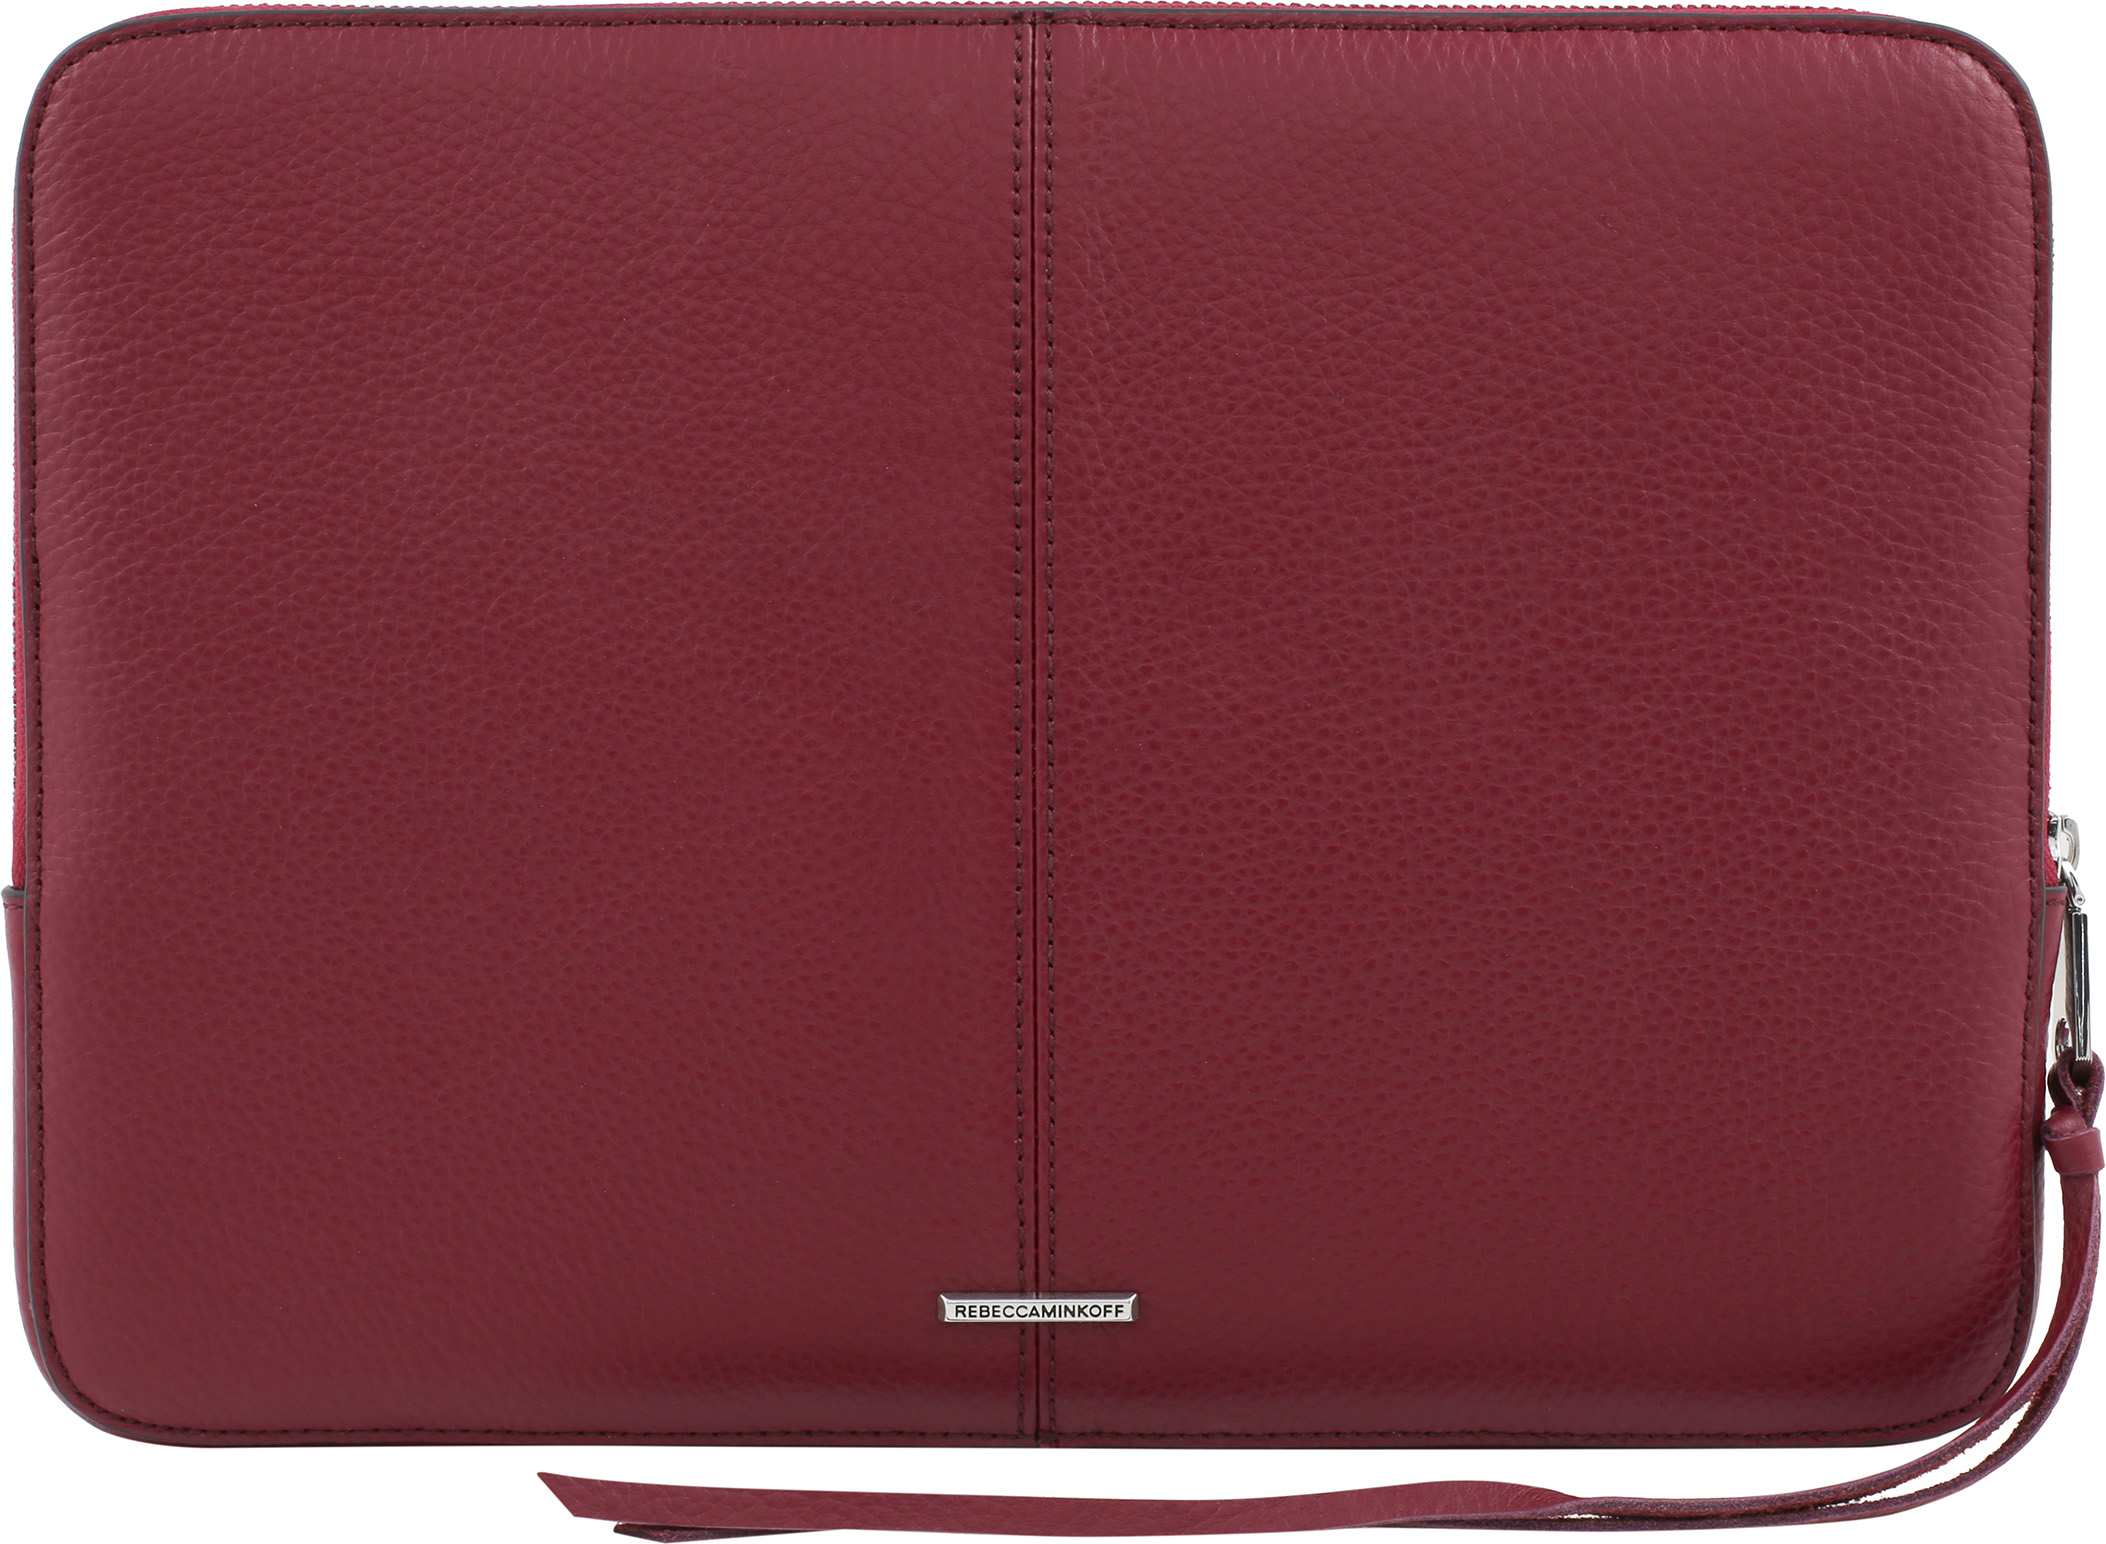 Incipio Rebecca Minkoff's Moto Sleeve Surface Pro (Deep Red)